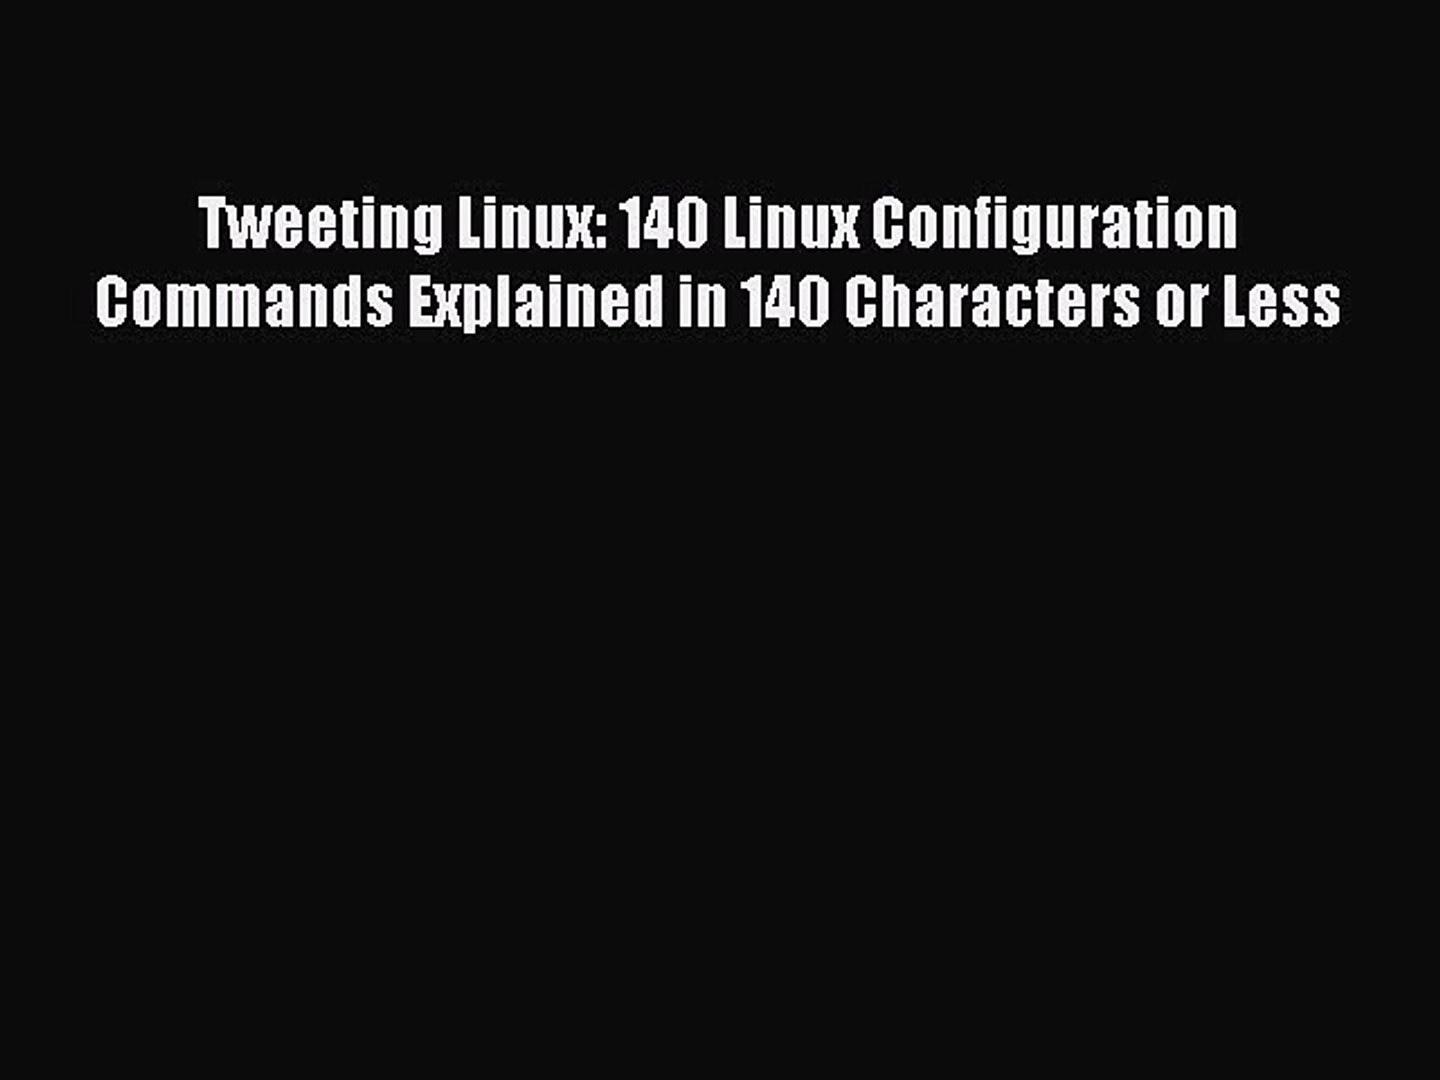 [Read PDF] Tweeting Linux: 140 Linux Configuration Commands Explained in 140 Characters or